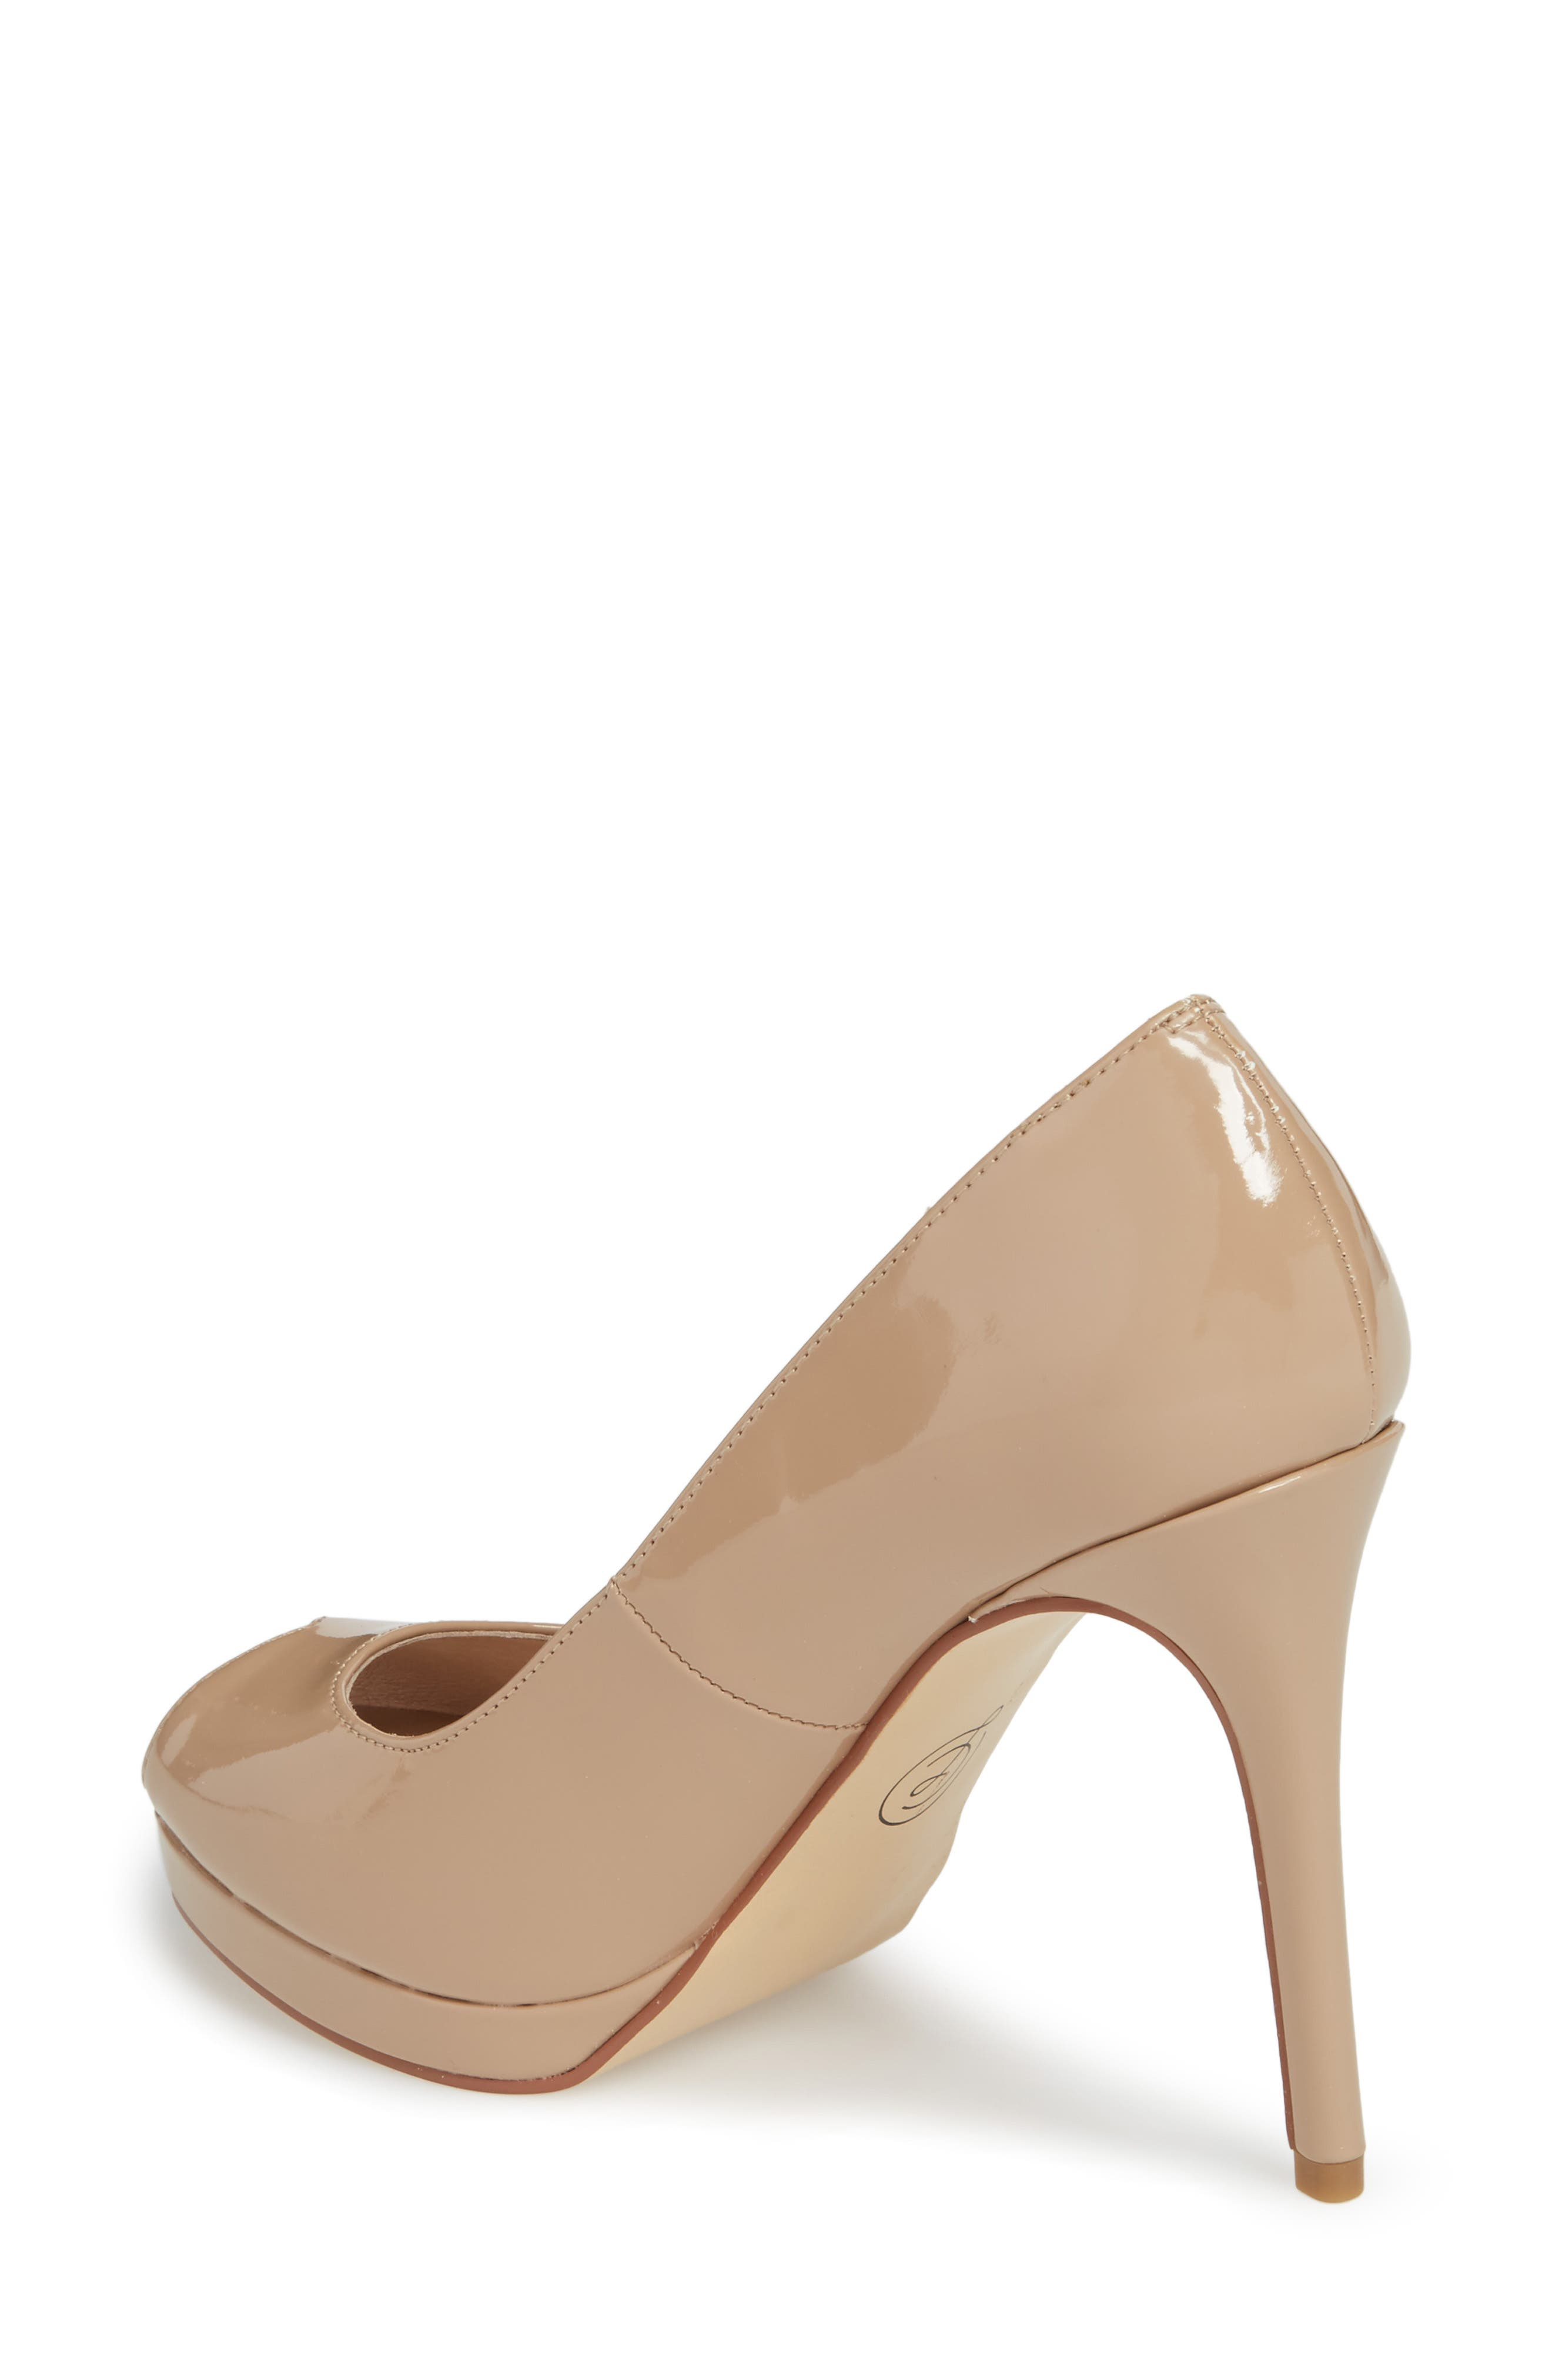 Fia Peep Toe Pump,                             Alternate thumbnail 2, color,                             Nude Patent